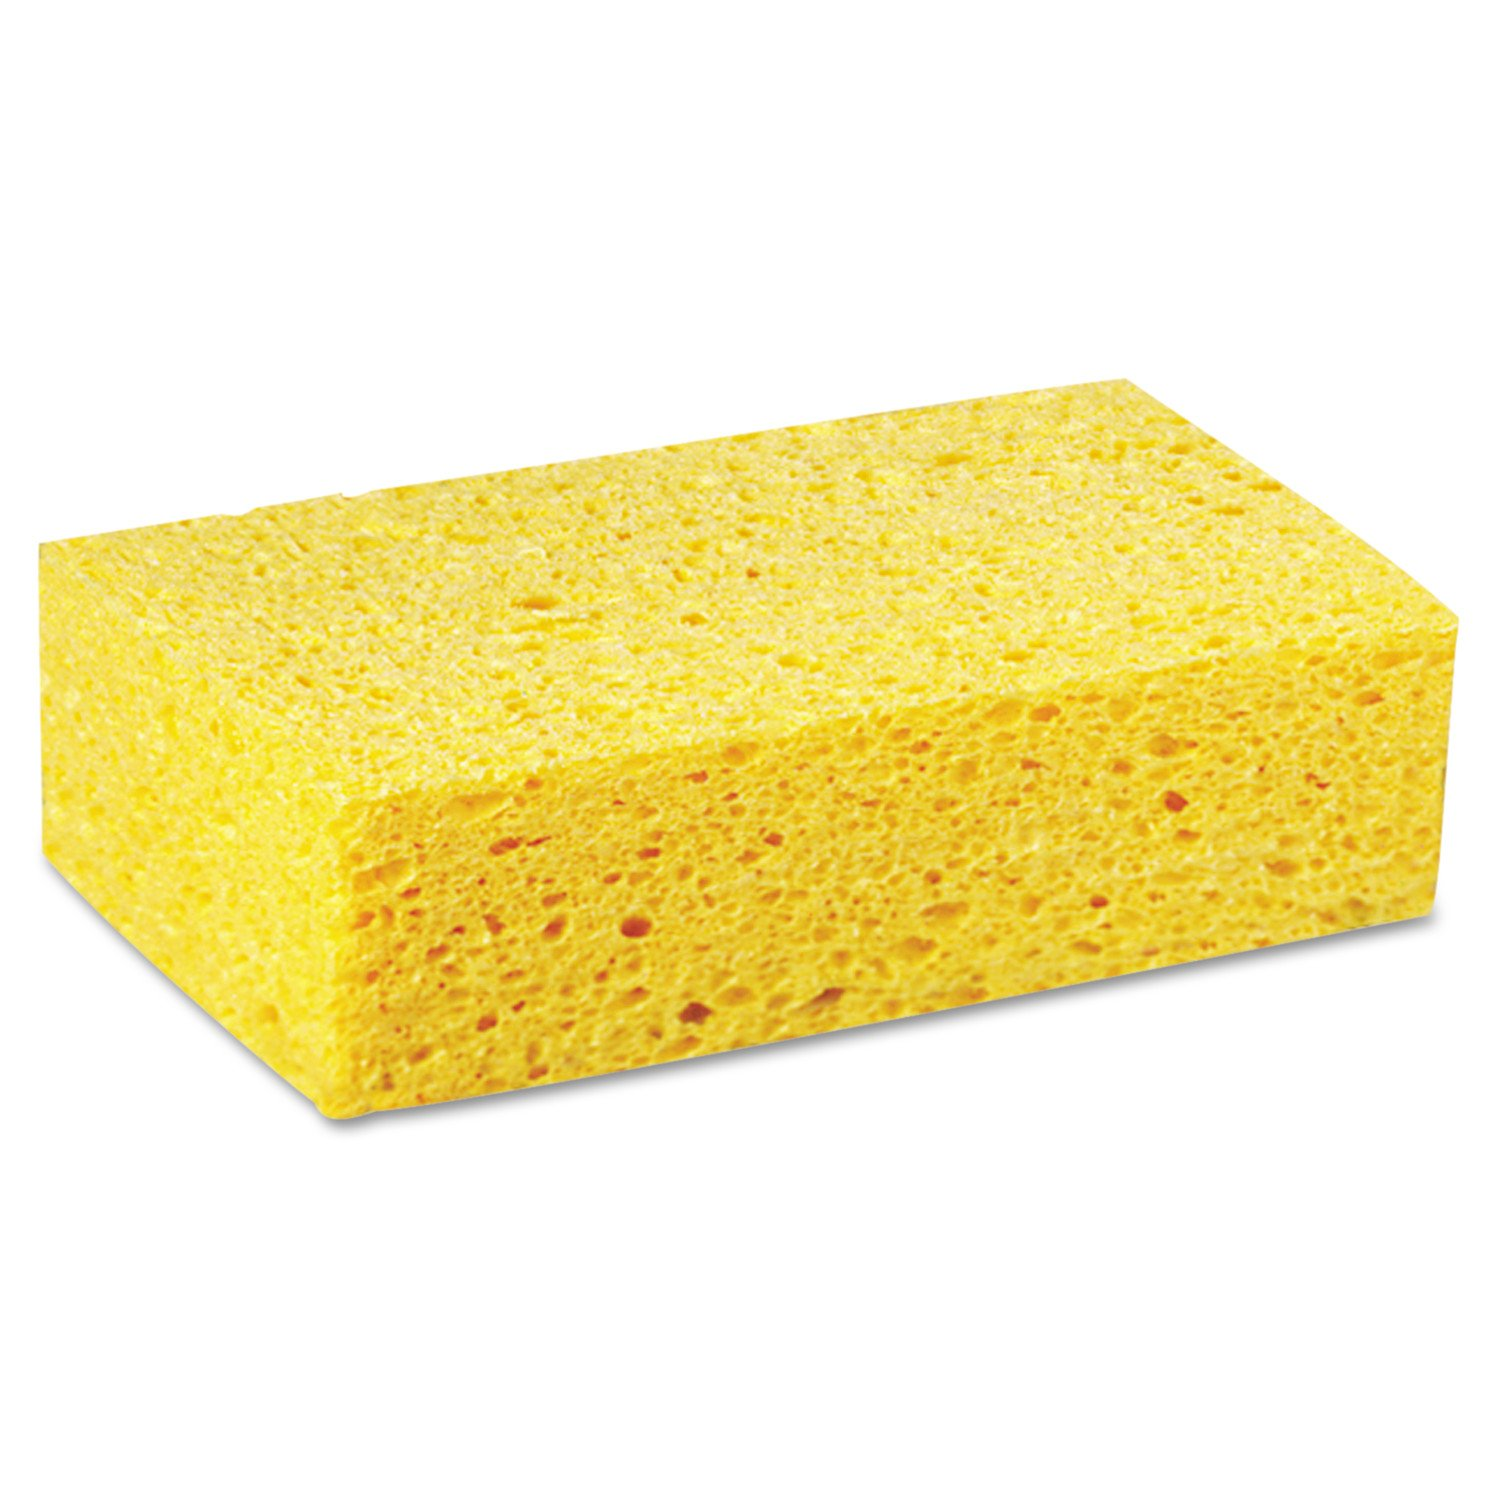 Premiere Pads PAD CS3 Large Cellulose Sponge, 7-51/64'' Length by 4-17/64'' Width, Yellow (Case of 24)